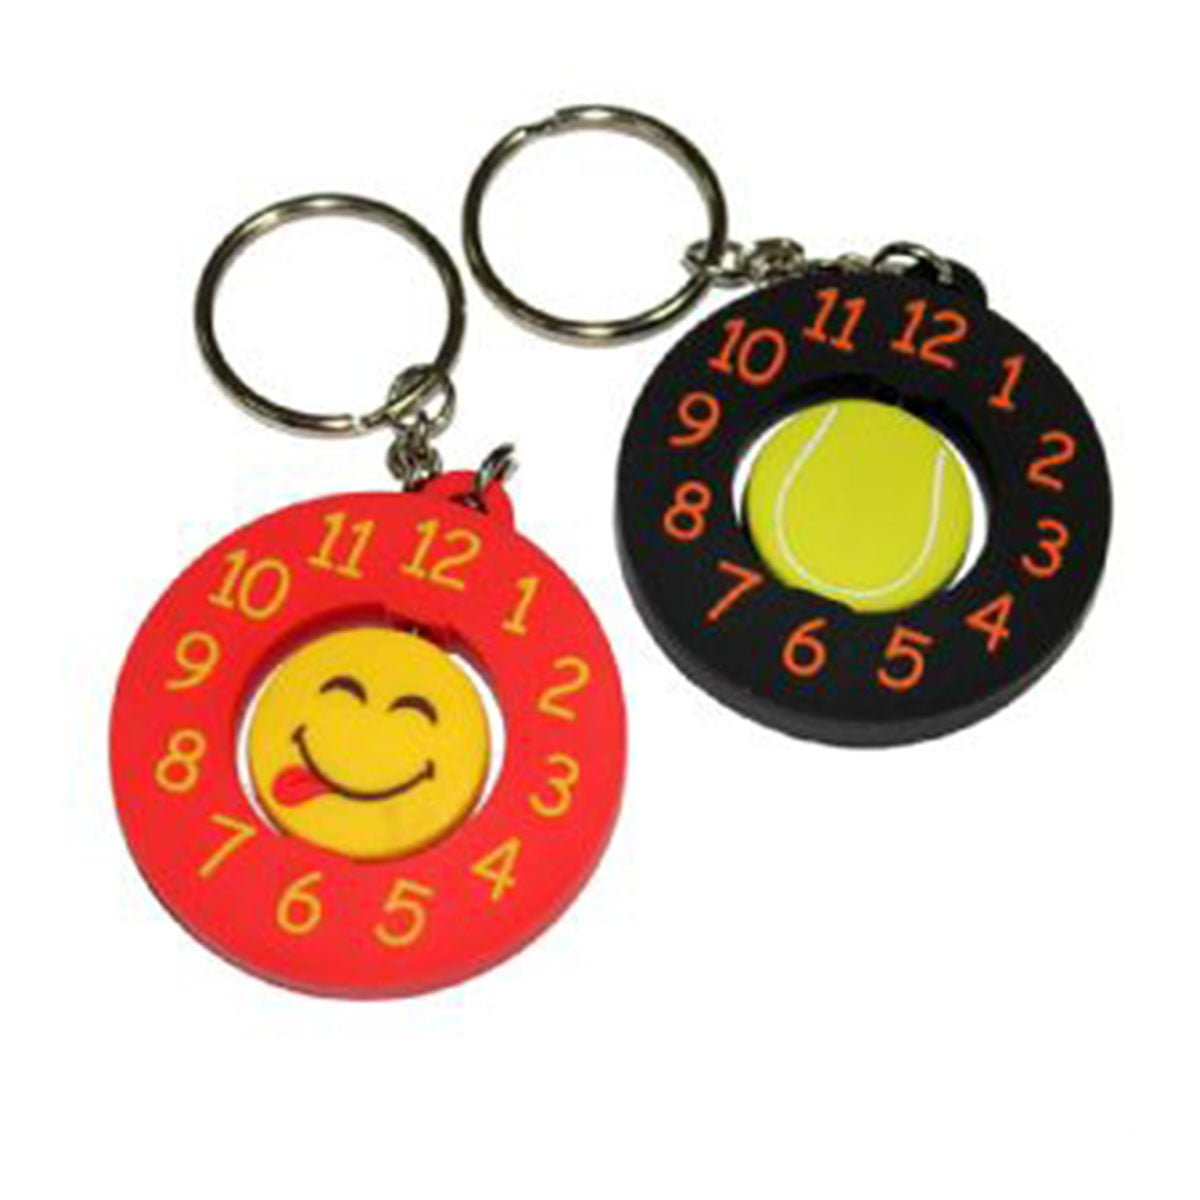 PVC Spinning Keyring-Available in any PMS colour.